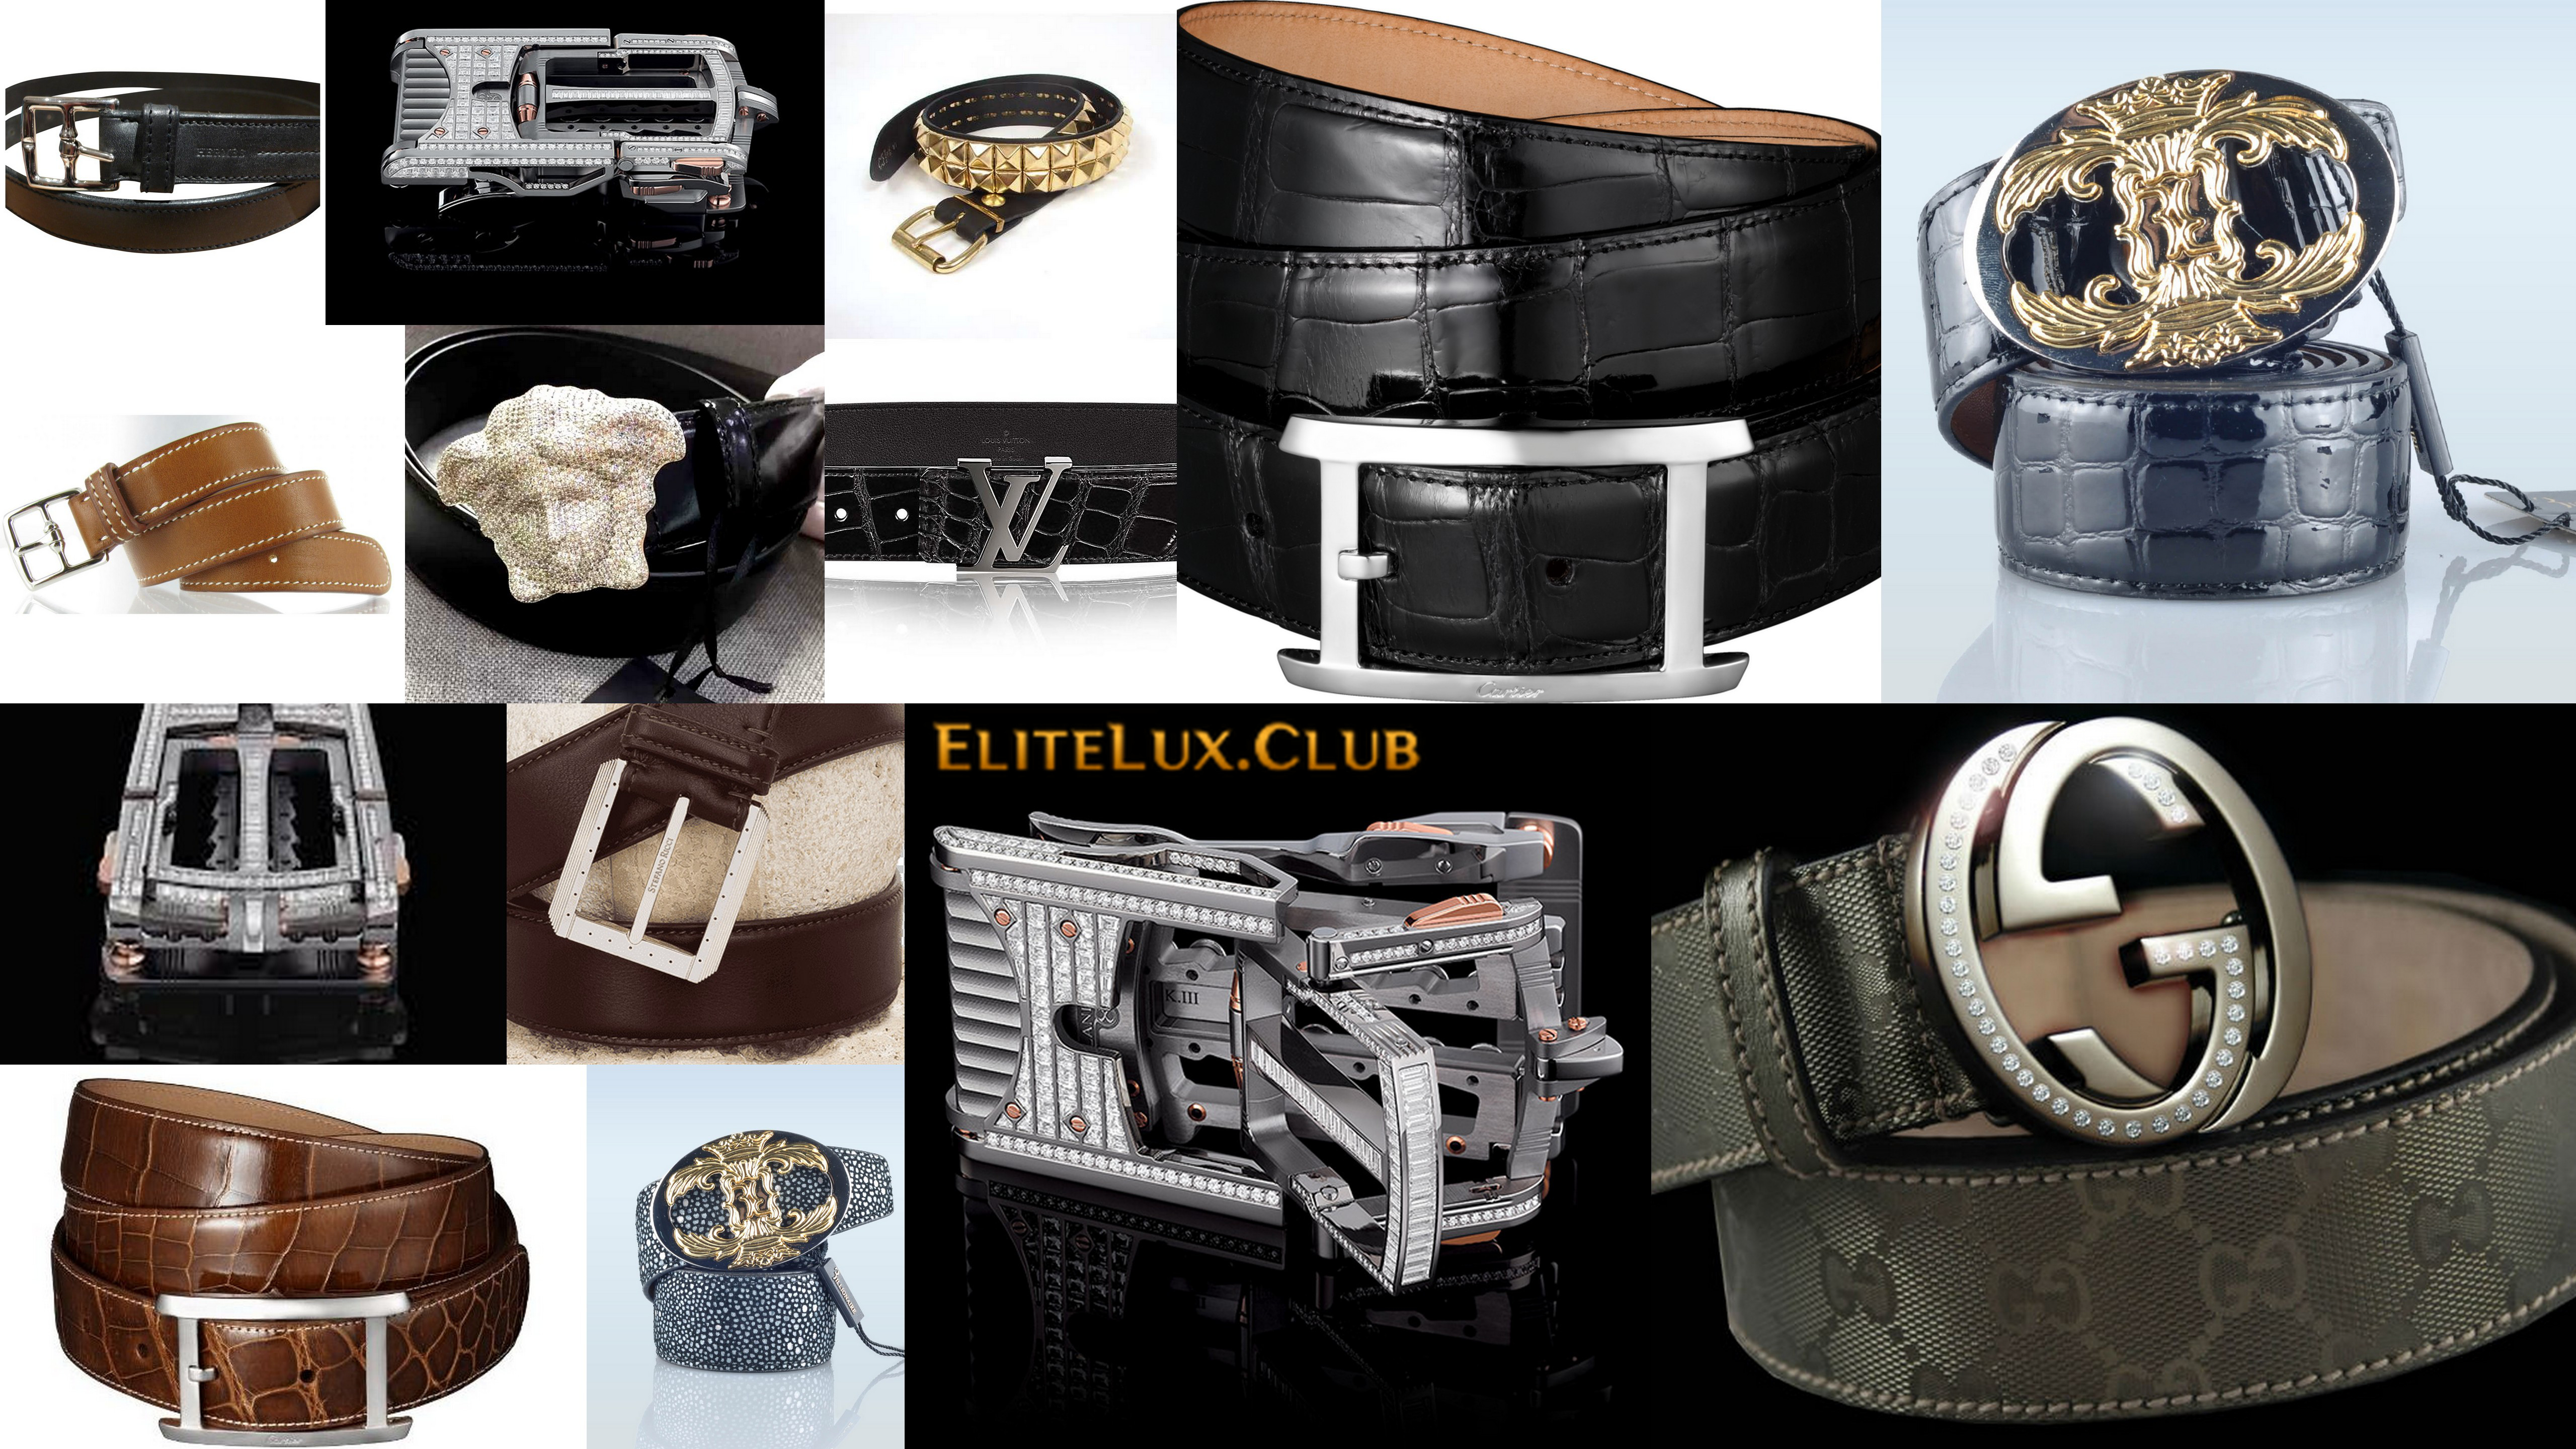 TOP 10 Most Expensive Belts 2018 You Need To See | Astonishing Royal Round With Belts Like Versace, Louis Vuitton, Gucci and more...